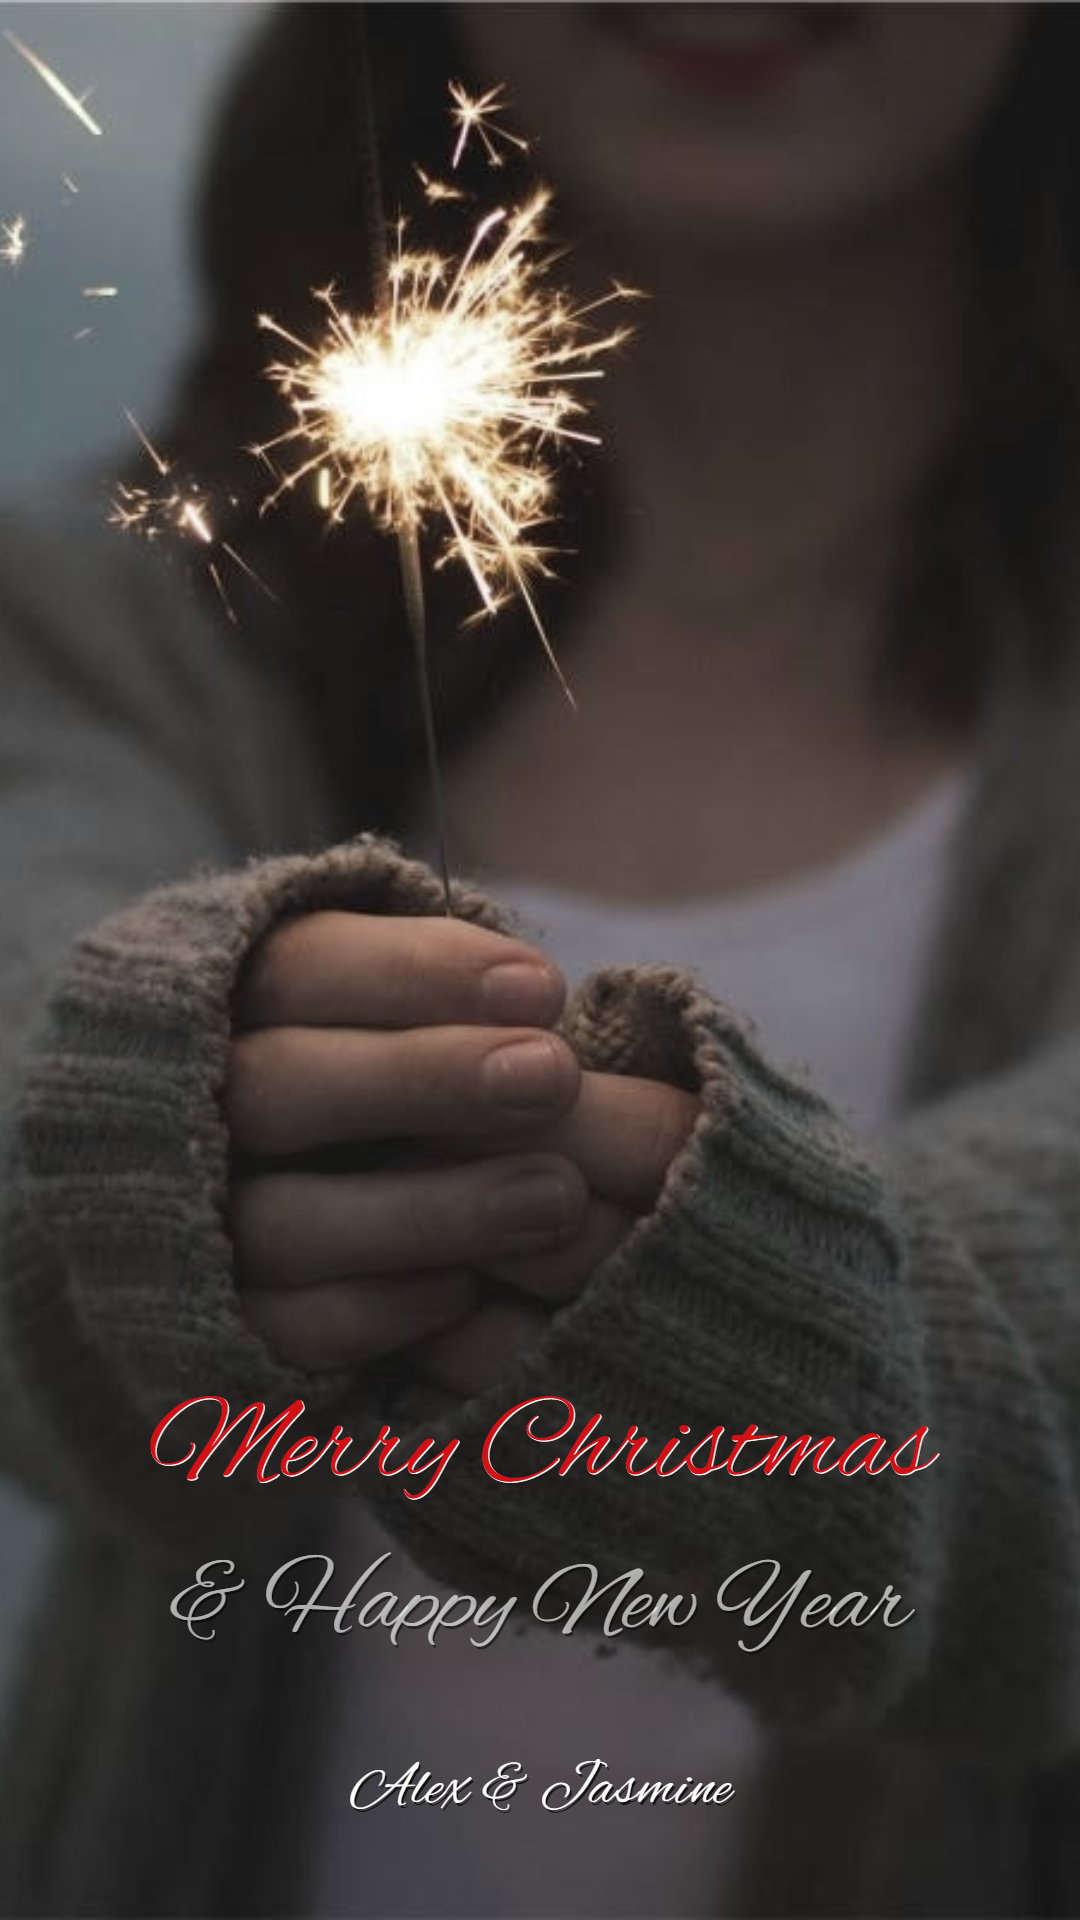 Happynewyear, Anniversary, Christmas, Black,  Free Image